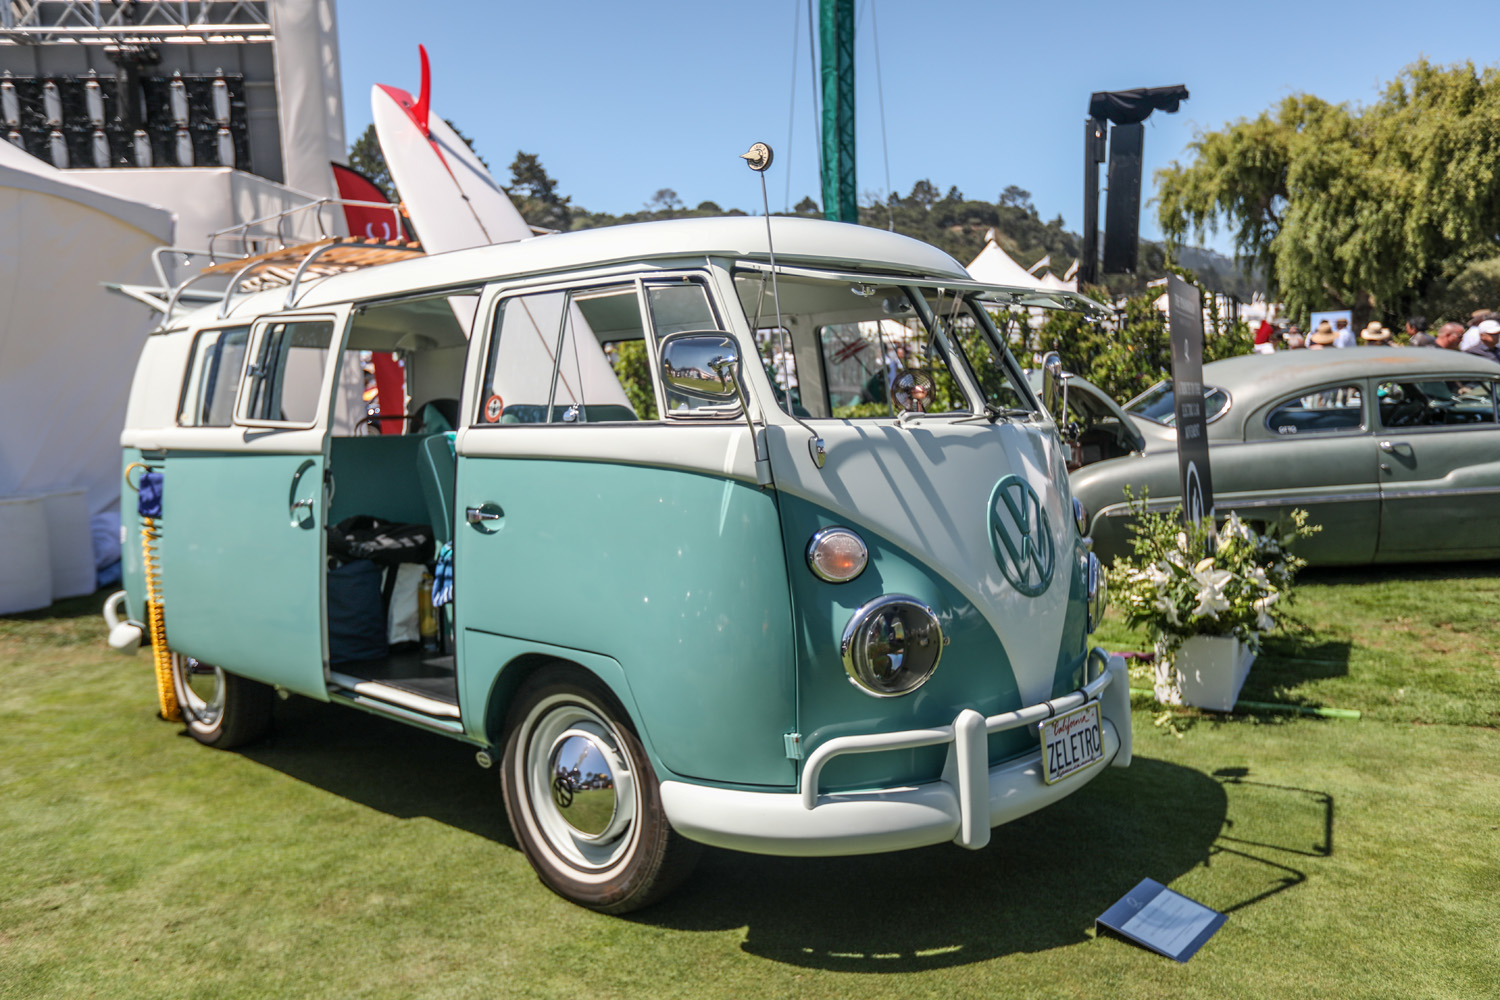 Zelectric VW bus